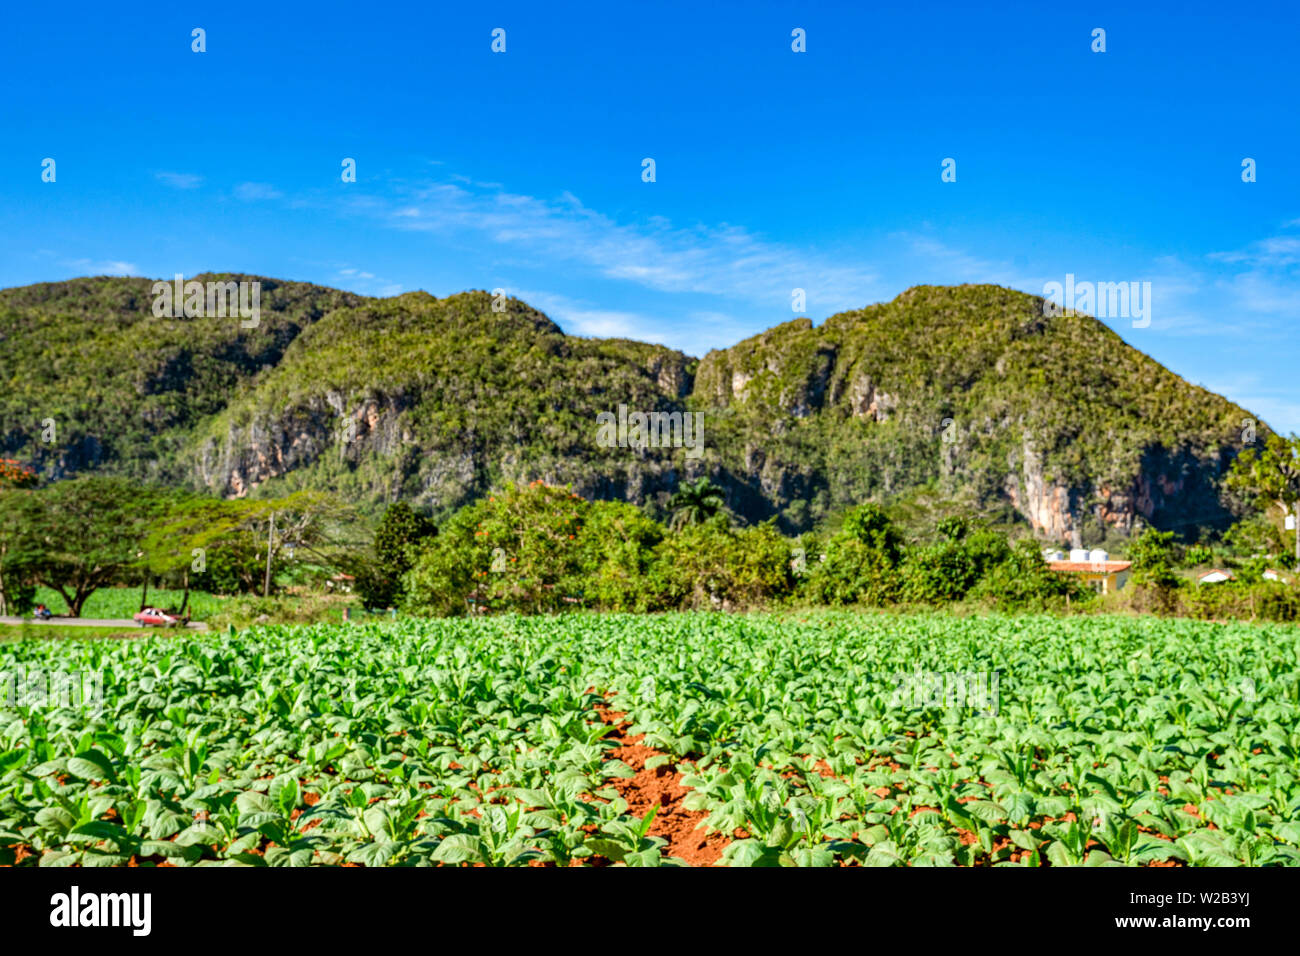 Tobacco farm in the beautiful country town of Viñales, Cuba. - Stock Image